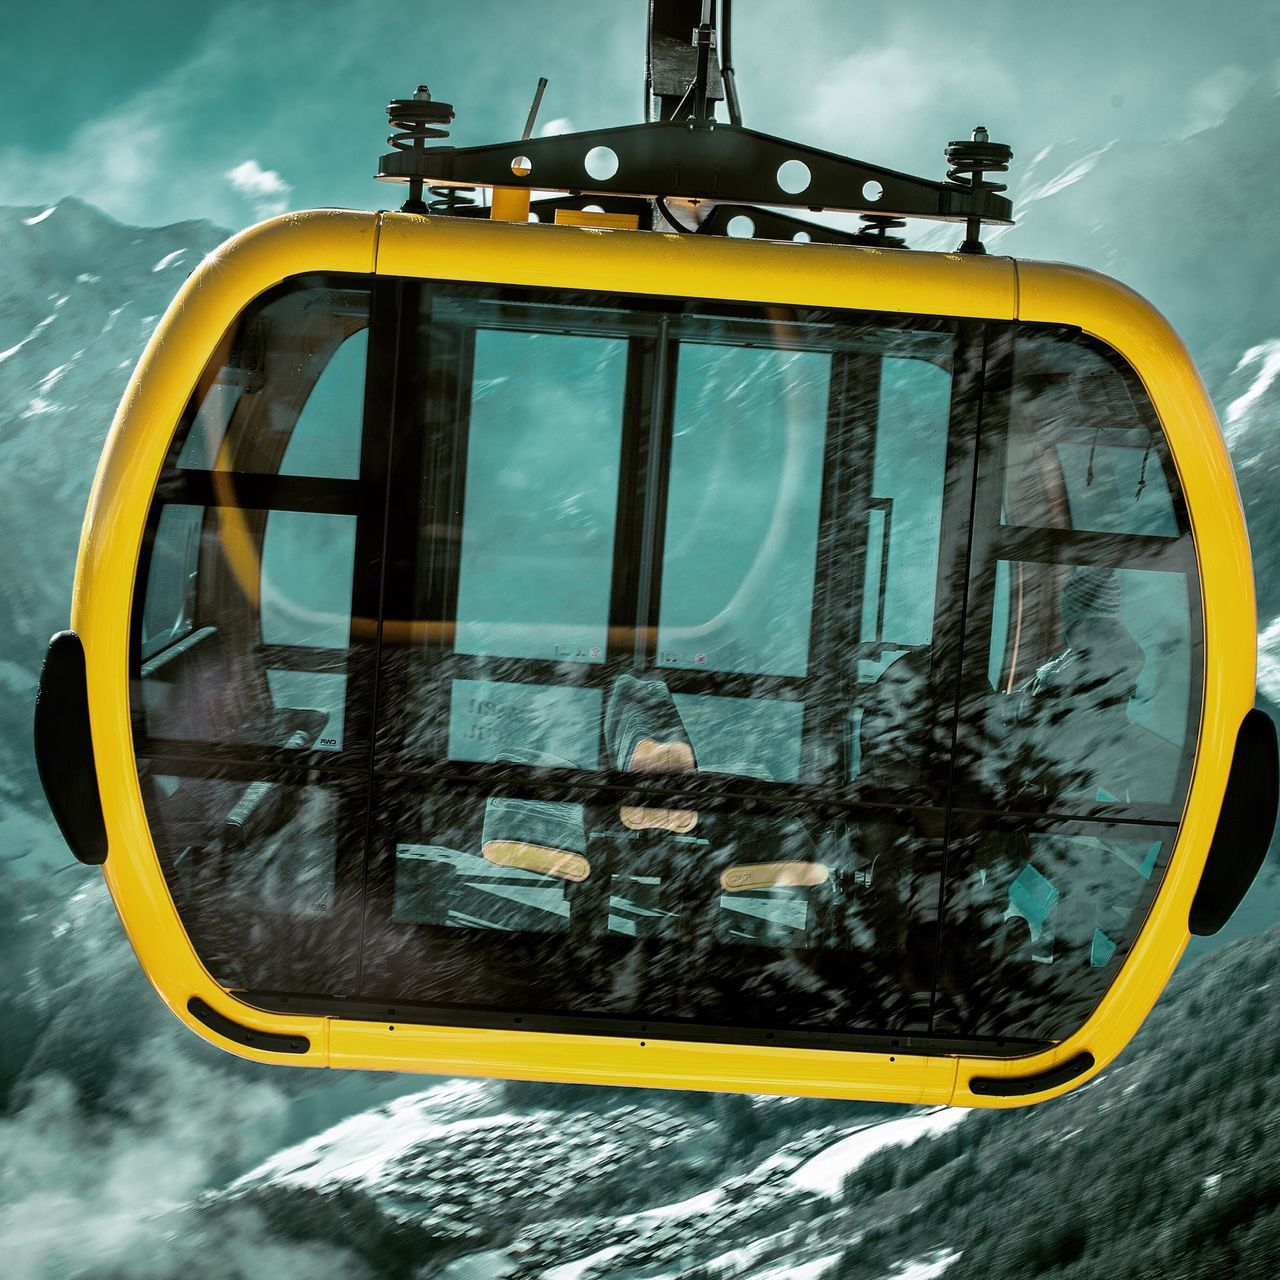 Gondola on the way down Nikonphotography Mayerhofen Mountain Mountain View Winter Photography EyeEm Eye4photography  Gondola Photographer Josienvangeffen